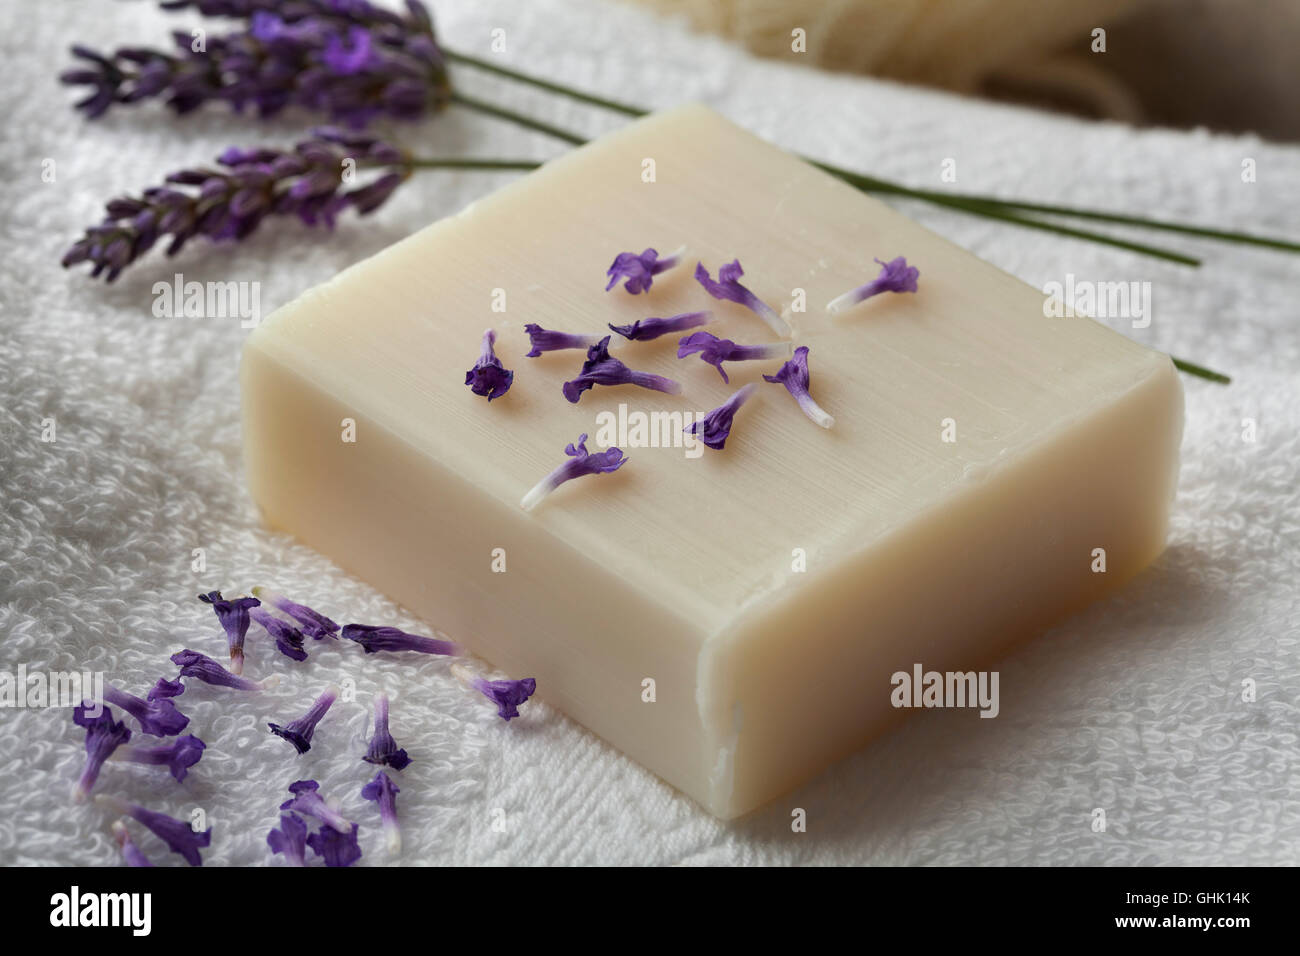 Bar of lavender soap and flowers - Stock Image